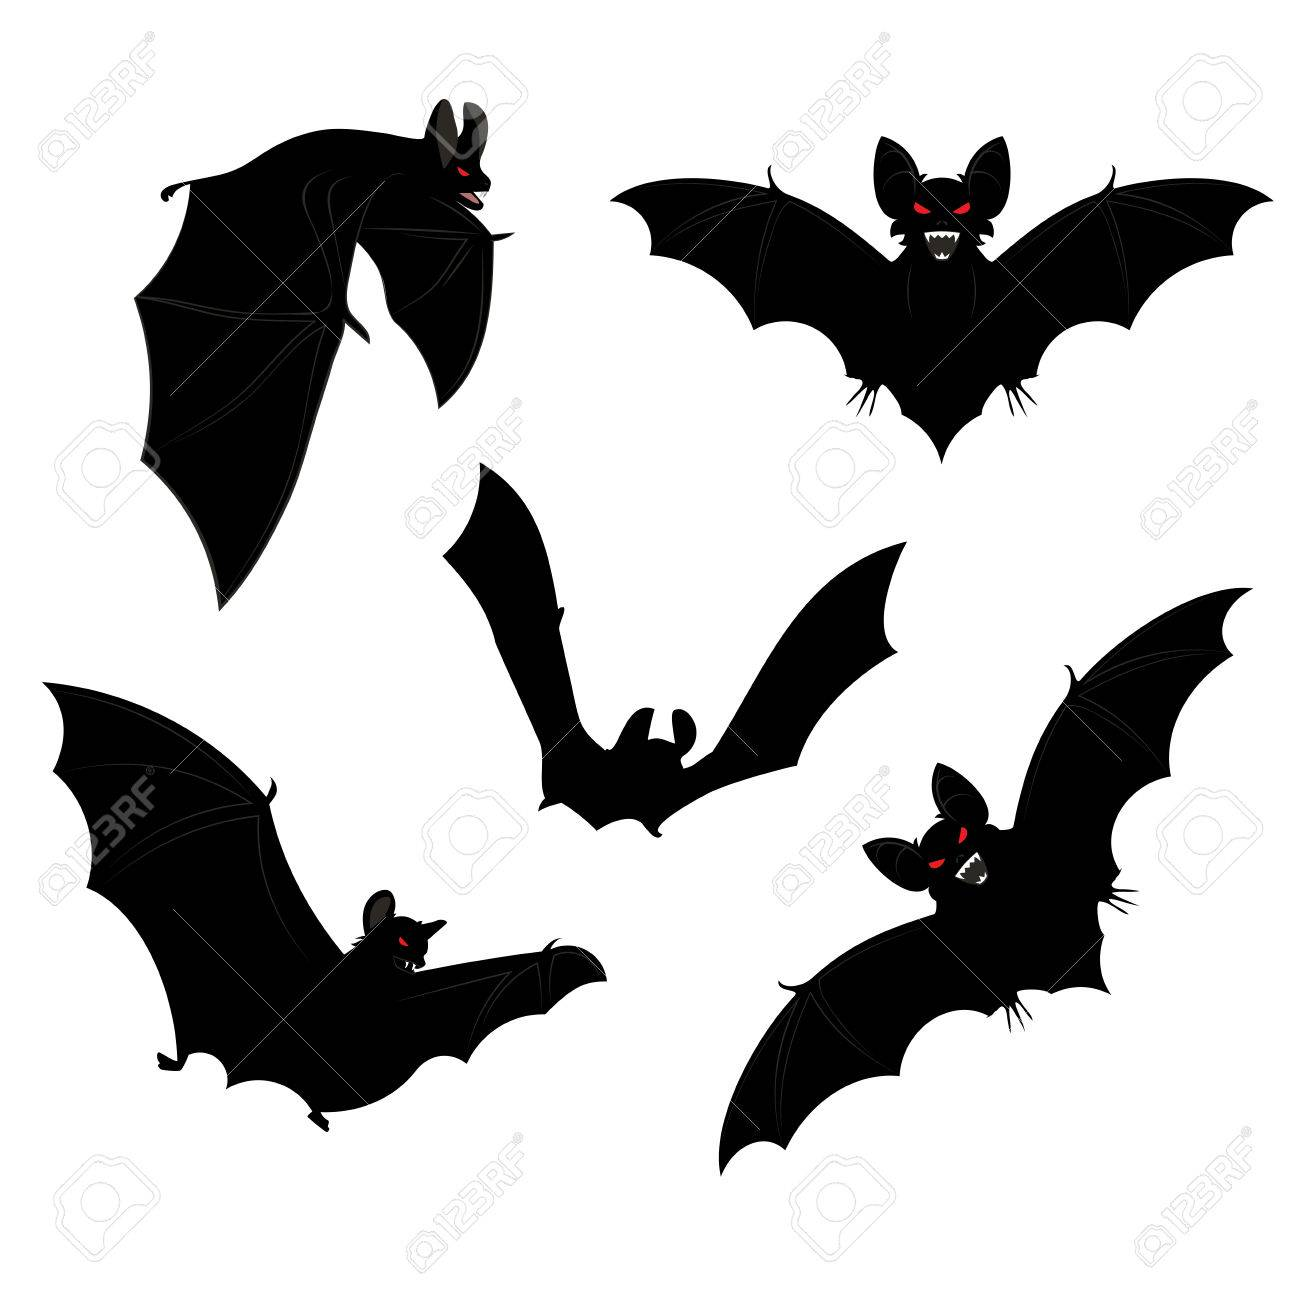 set of black halloween bats silhouettes with red eyes stock vector 32887294 - Halloween Pictures Bats